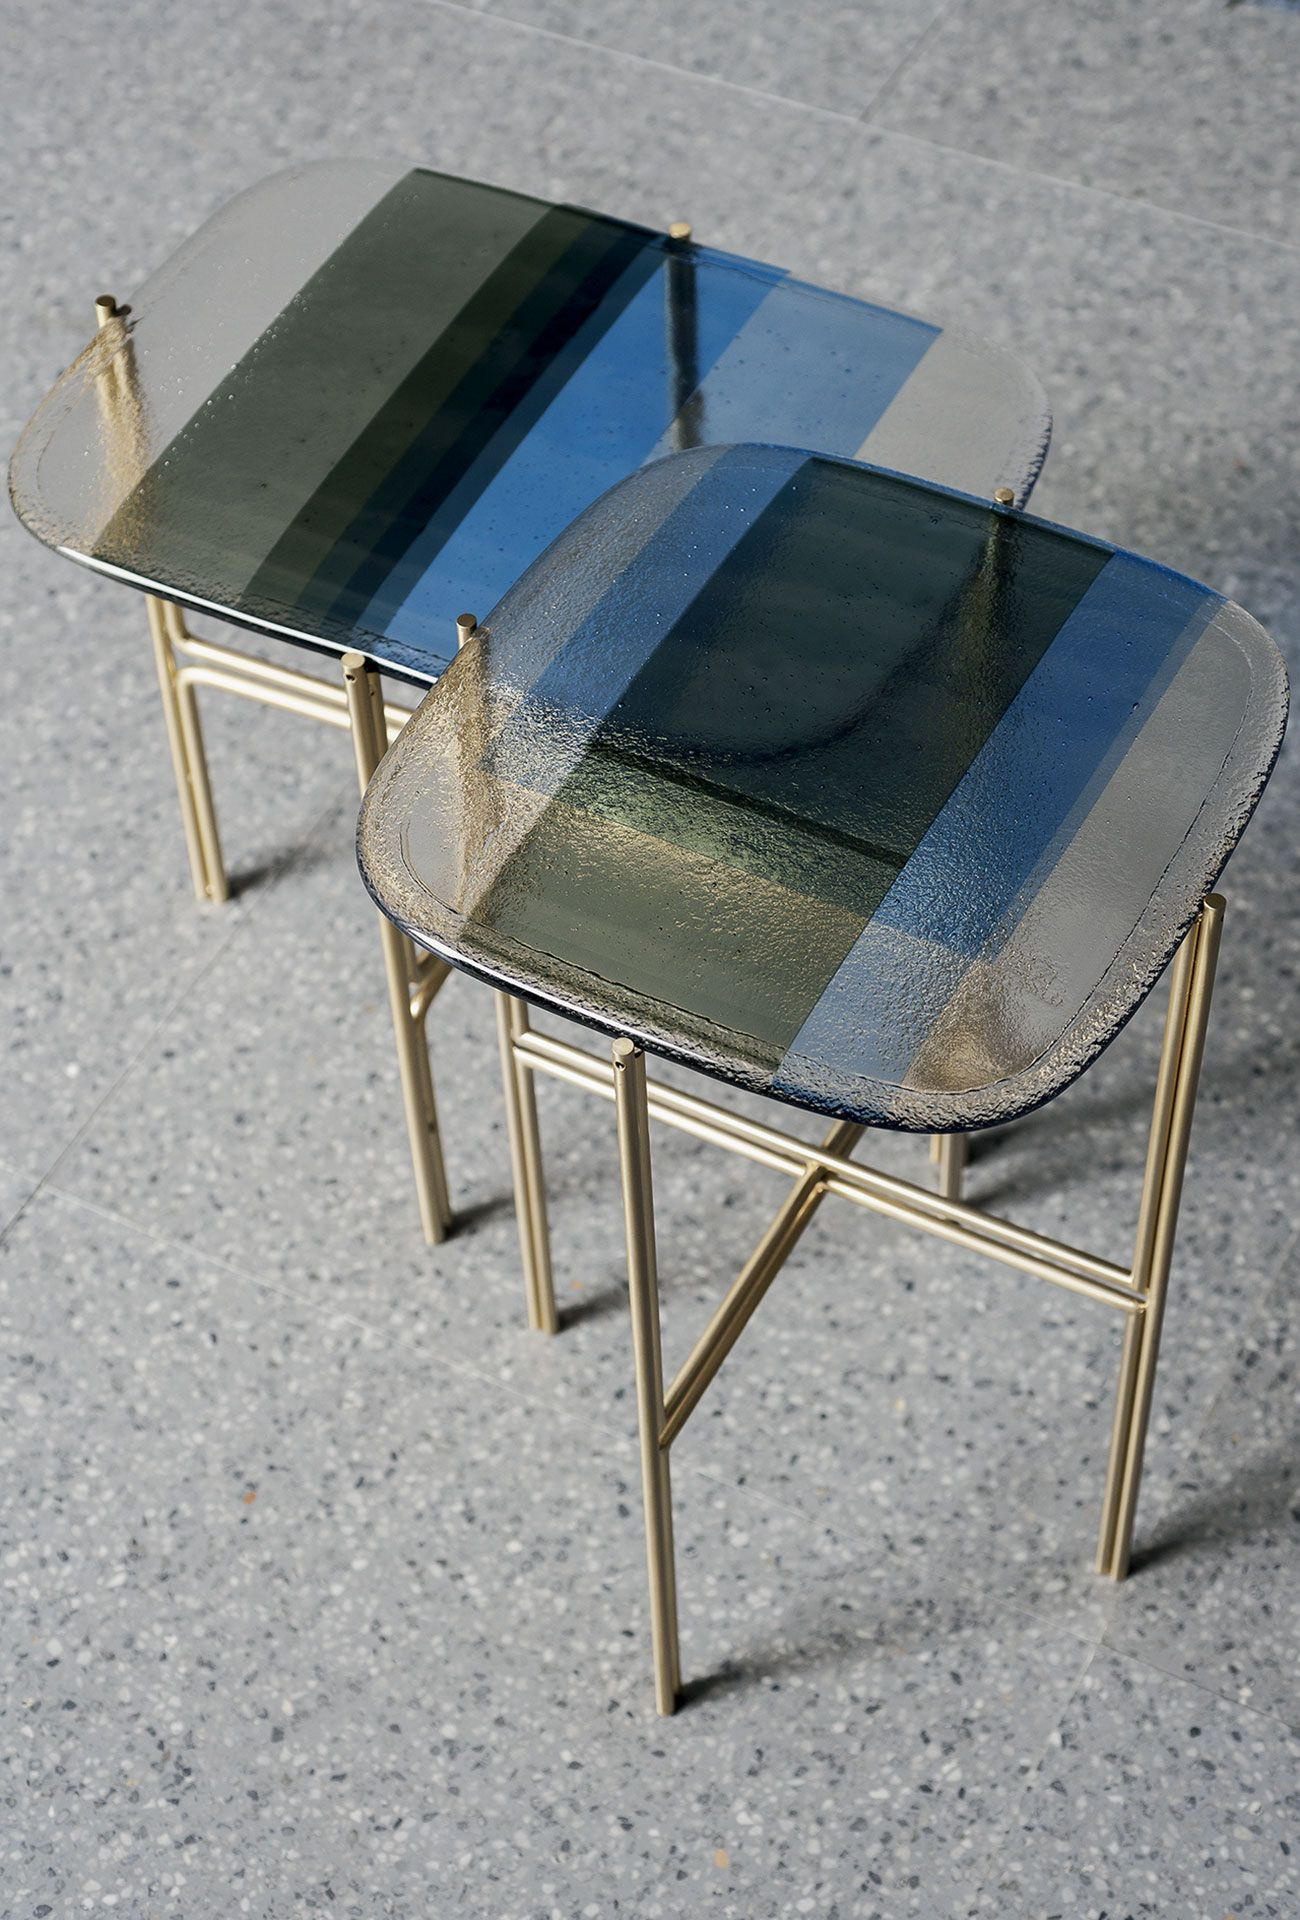 Blue Artistic Fused Glass Made Of Murano Glass Baxter Small Tables Italian Leather Furniture Brass Furniture [ 1920 x 1300 Pixel ]